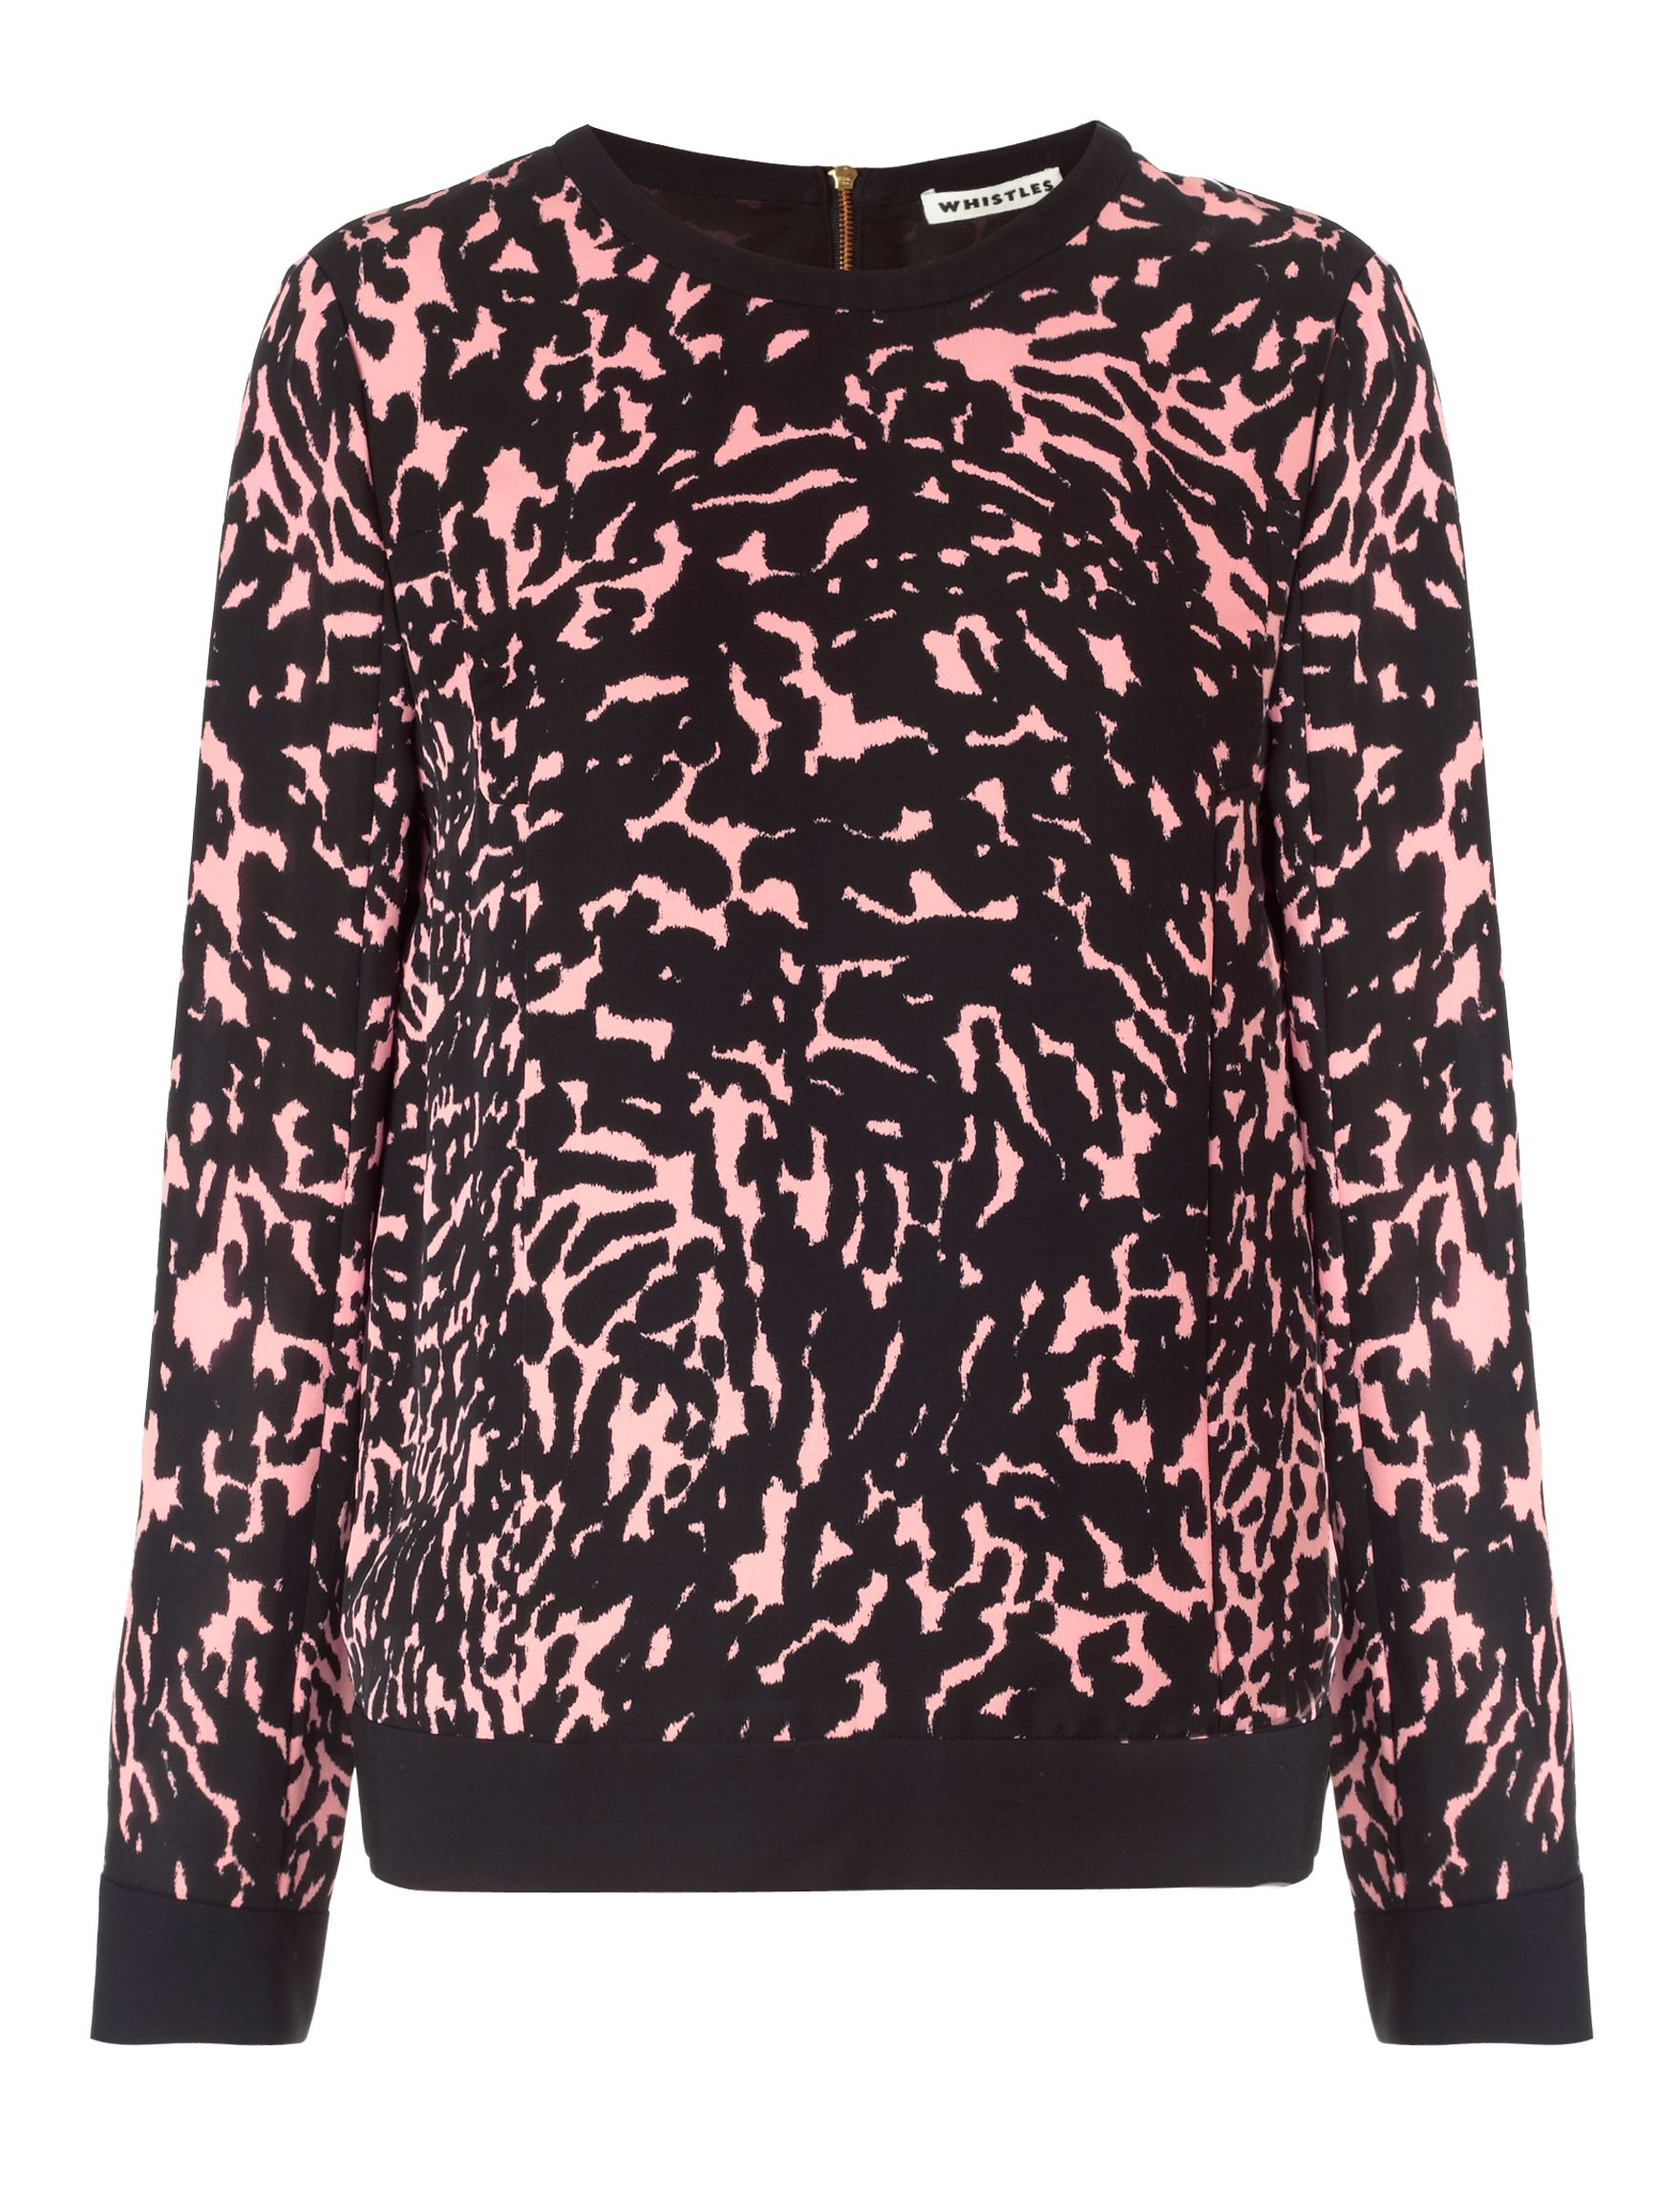 Smudged spot silk sweatshirt